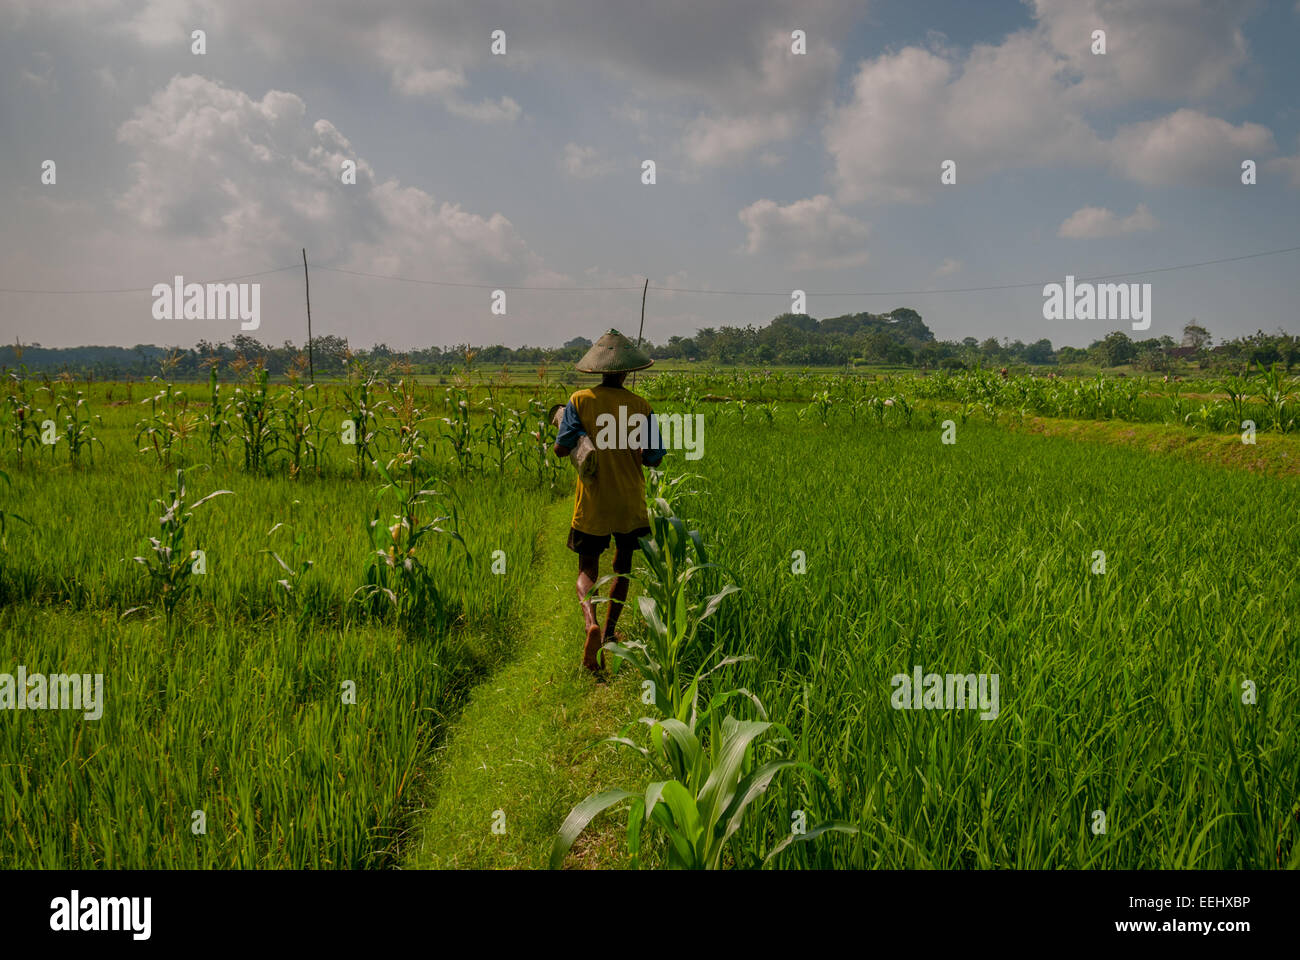 A Javanese farmer walks on a paddy field embankment in Blora, Central Java, Indonesia. - Stock Image